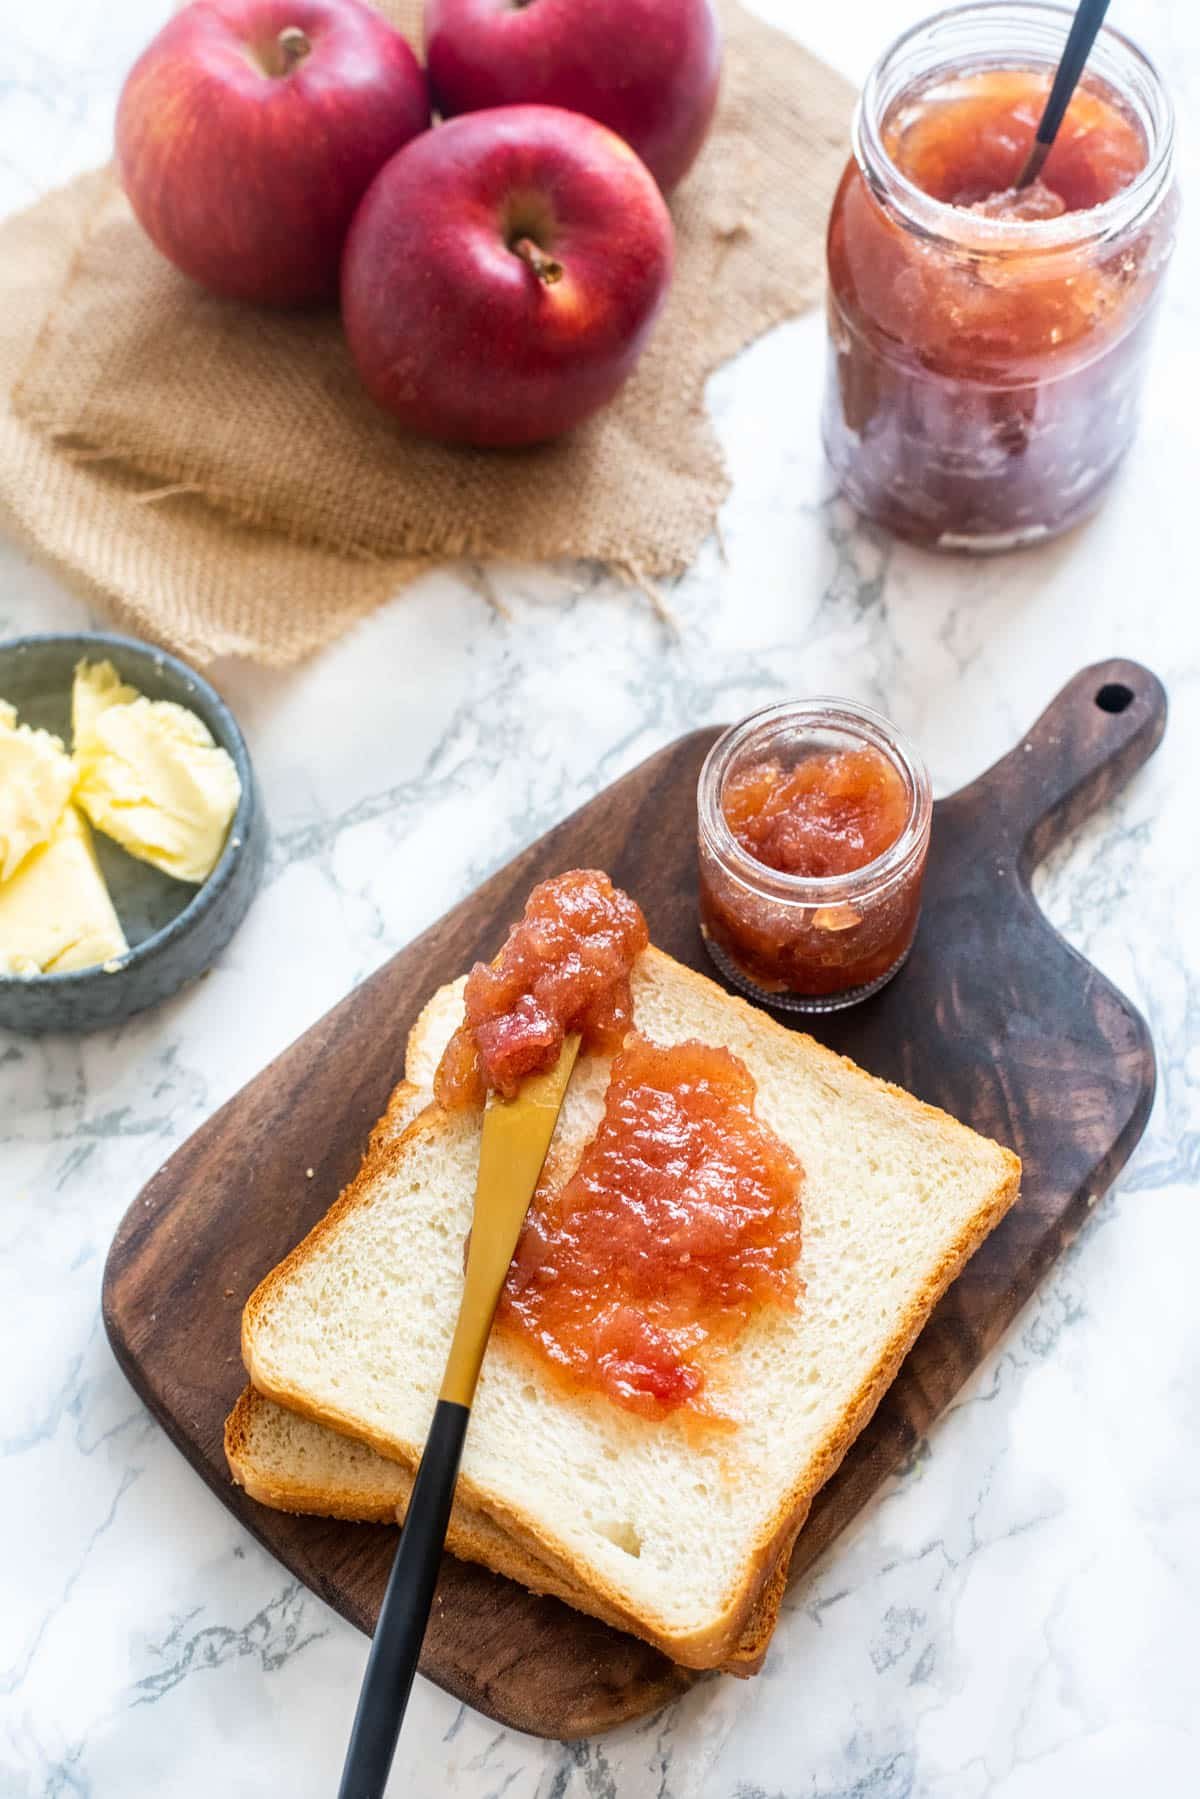 Apple jam spread on sandwich bread with a knife